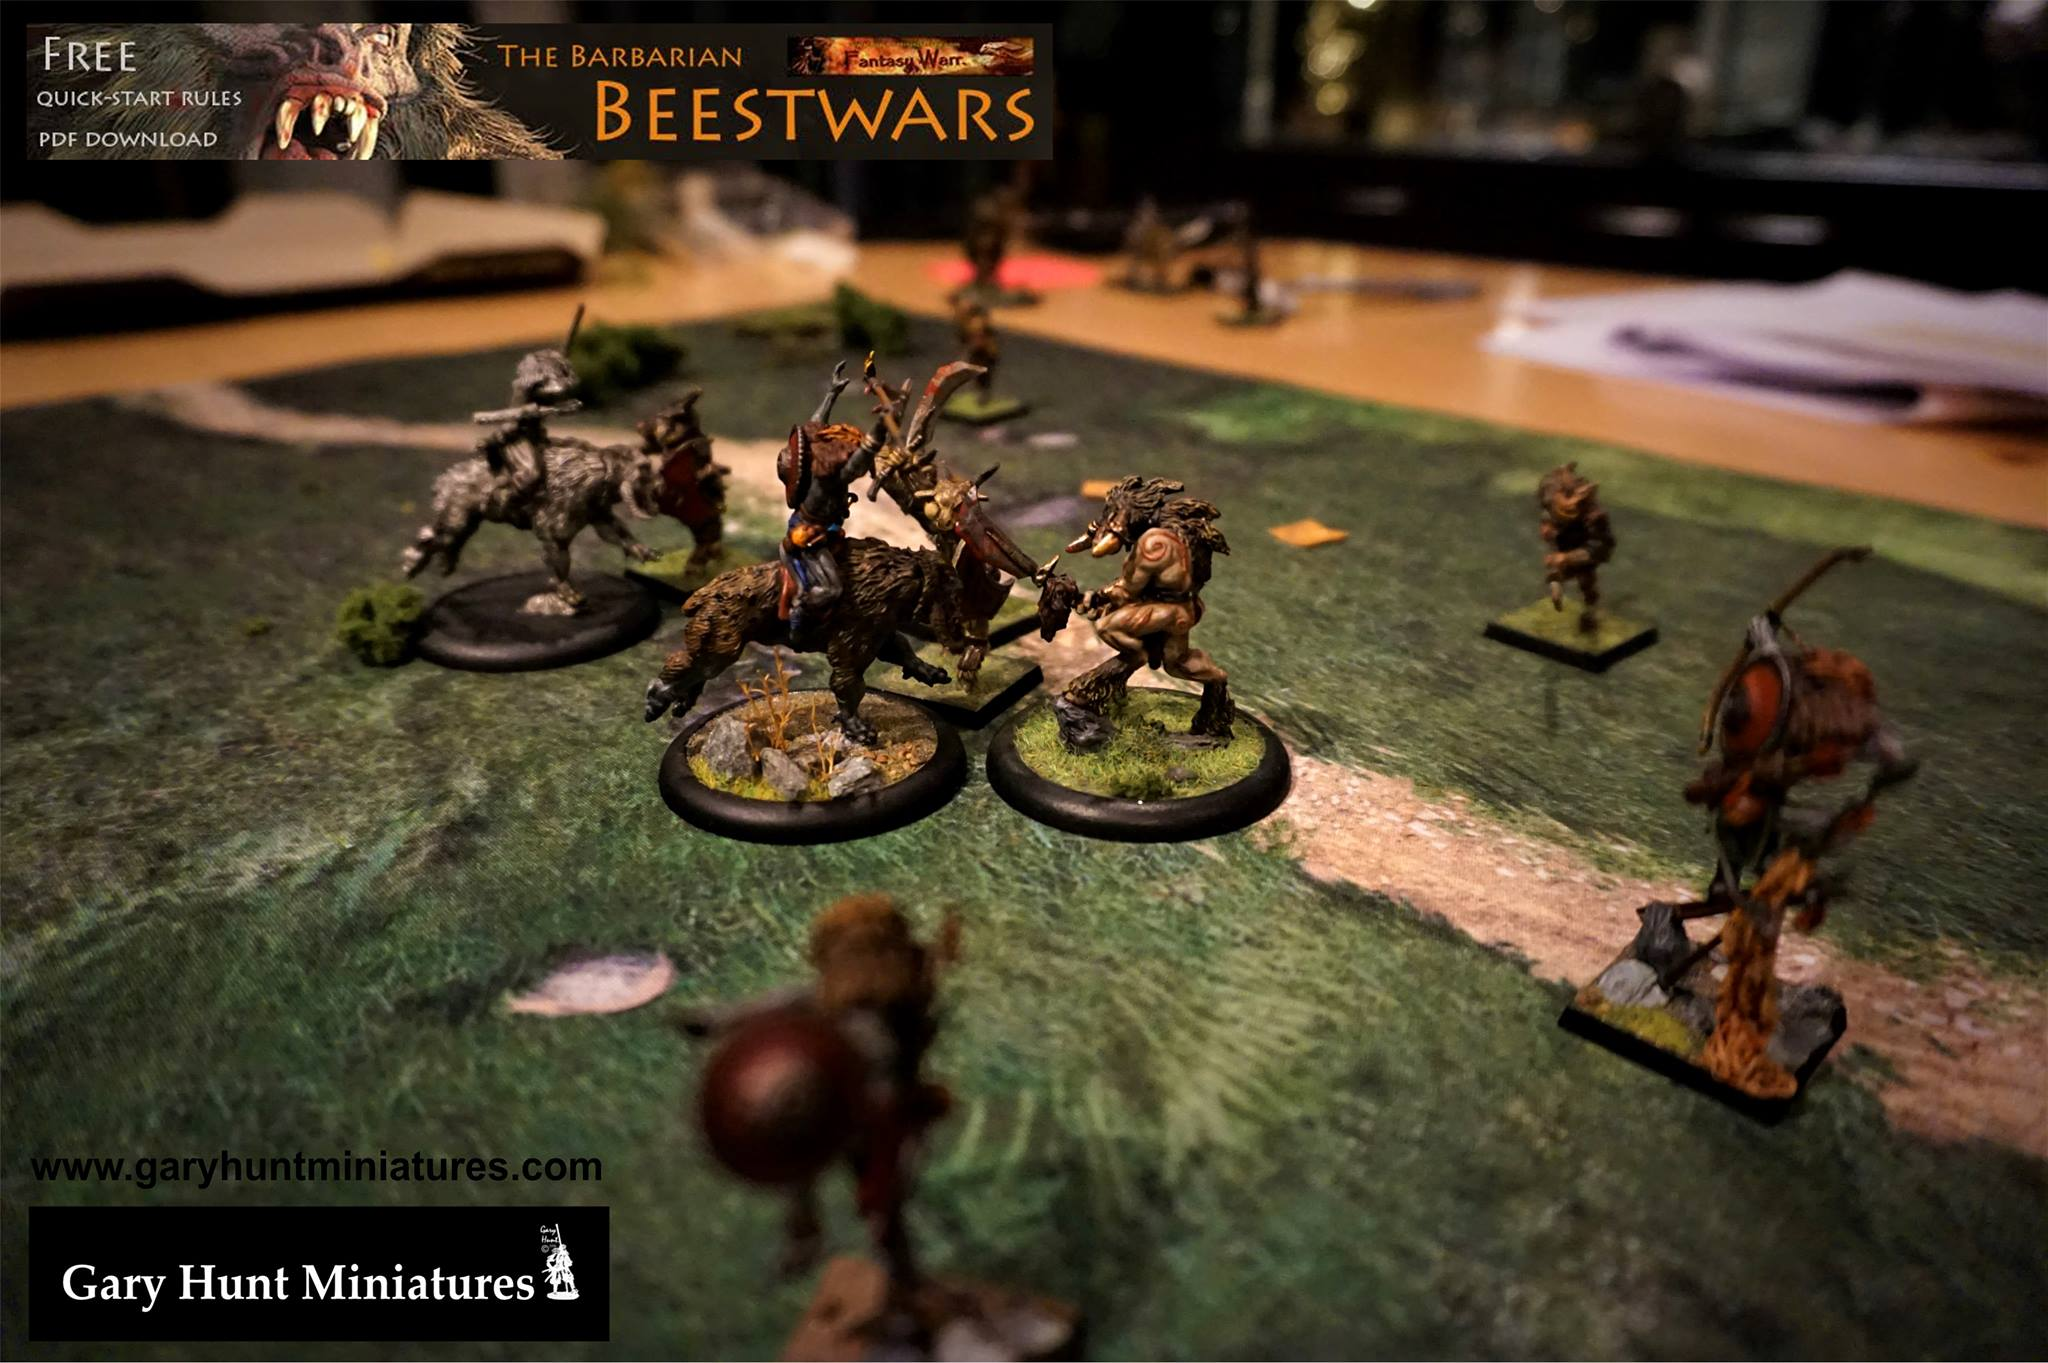 The Barbarian Beestwars quick-start tabletop game